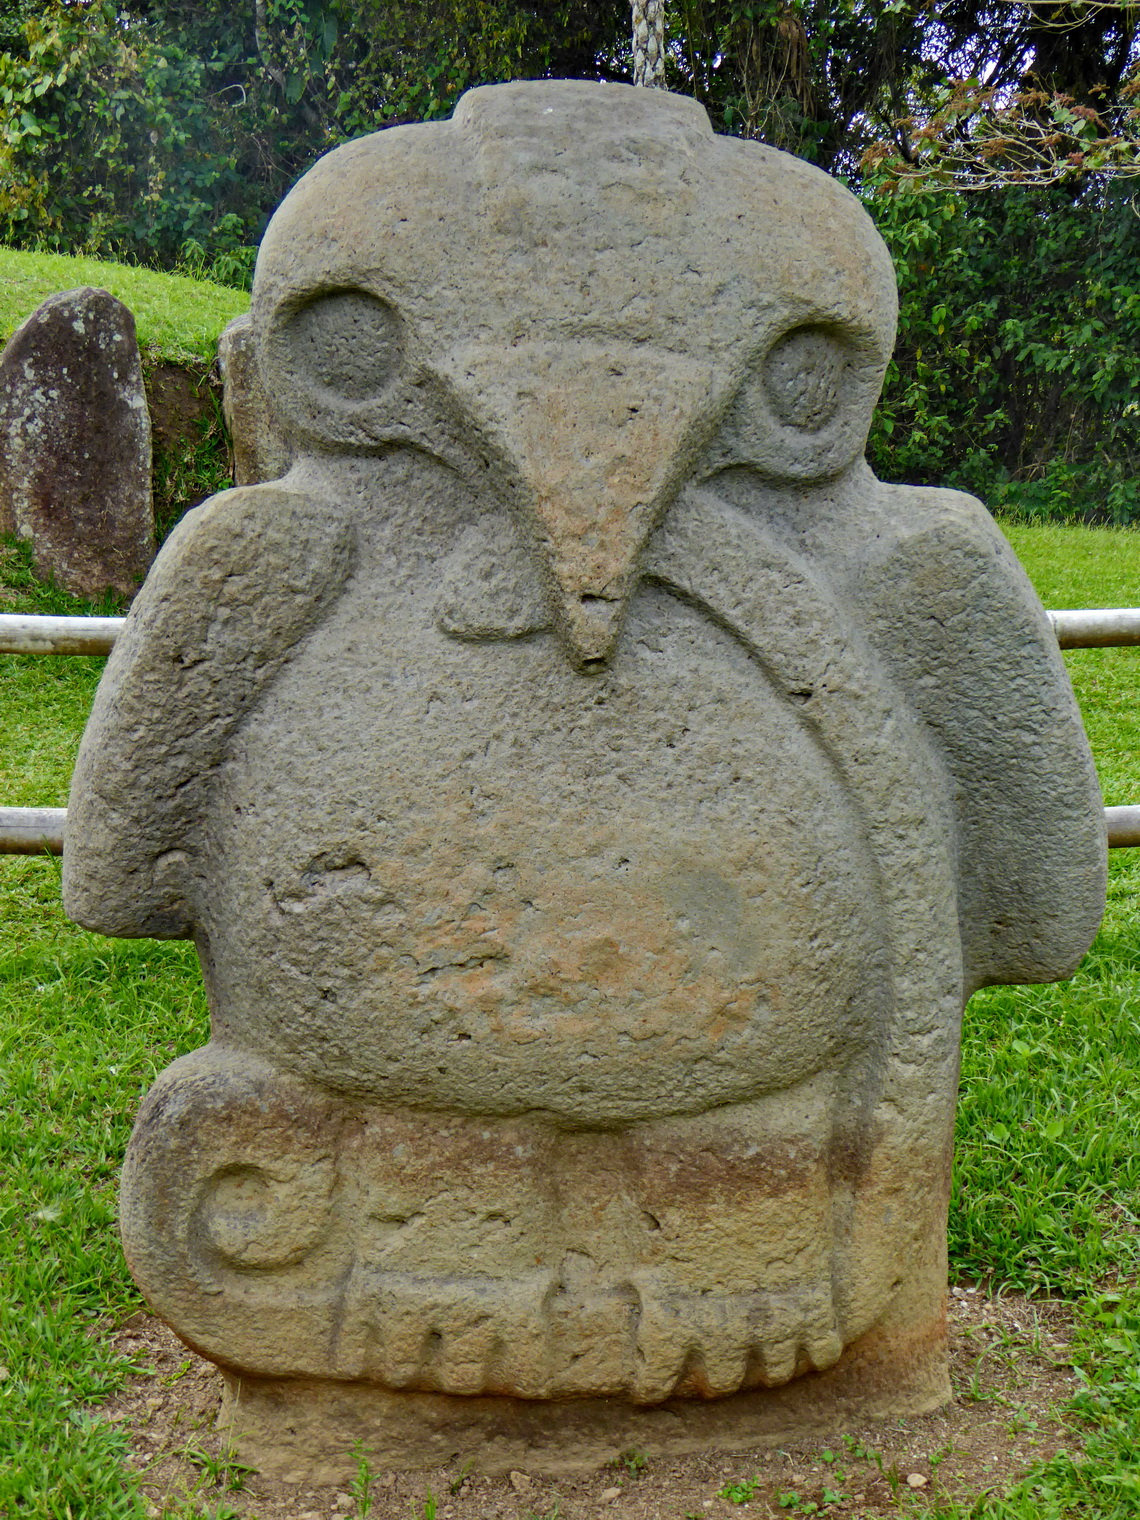 Eagle with snake, one of the most famous effigies of San Agustin